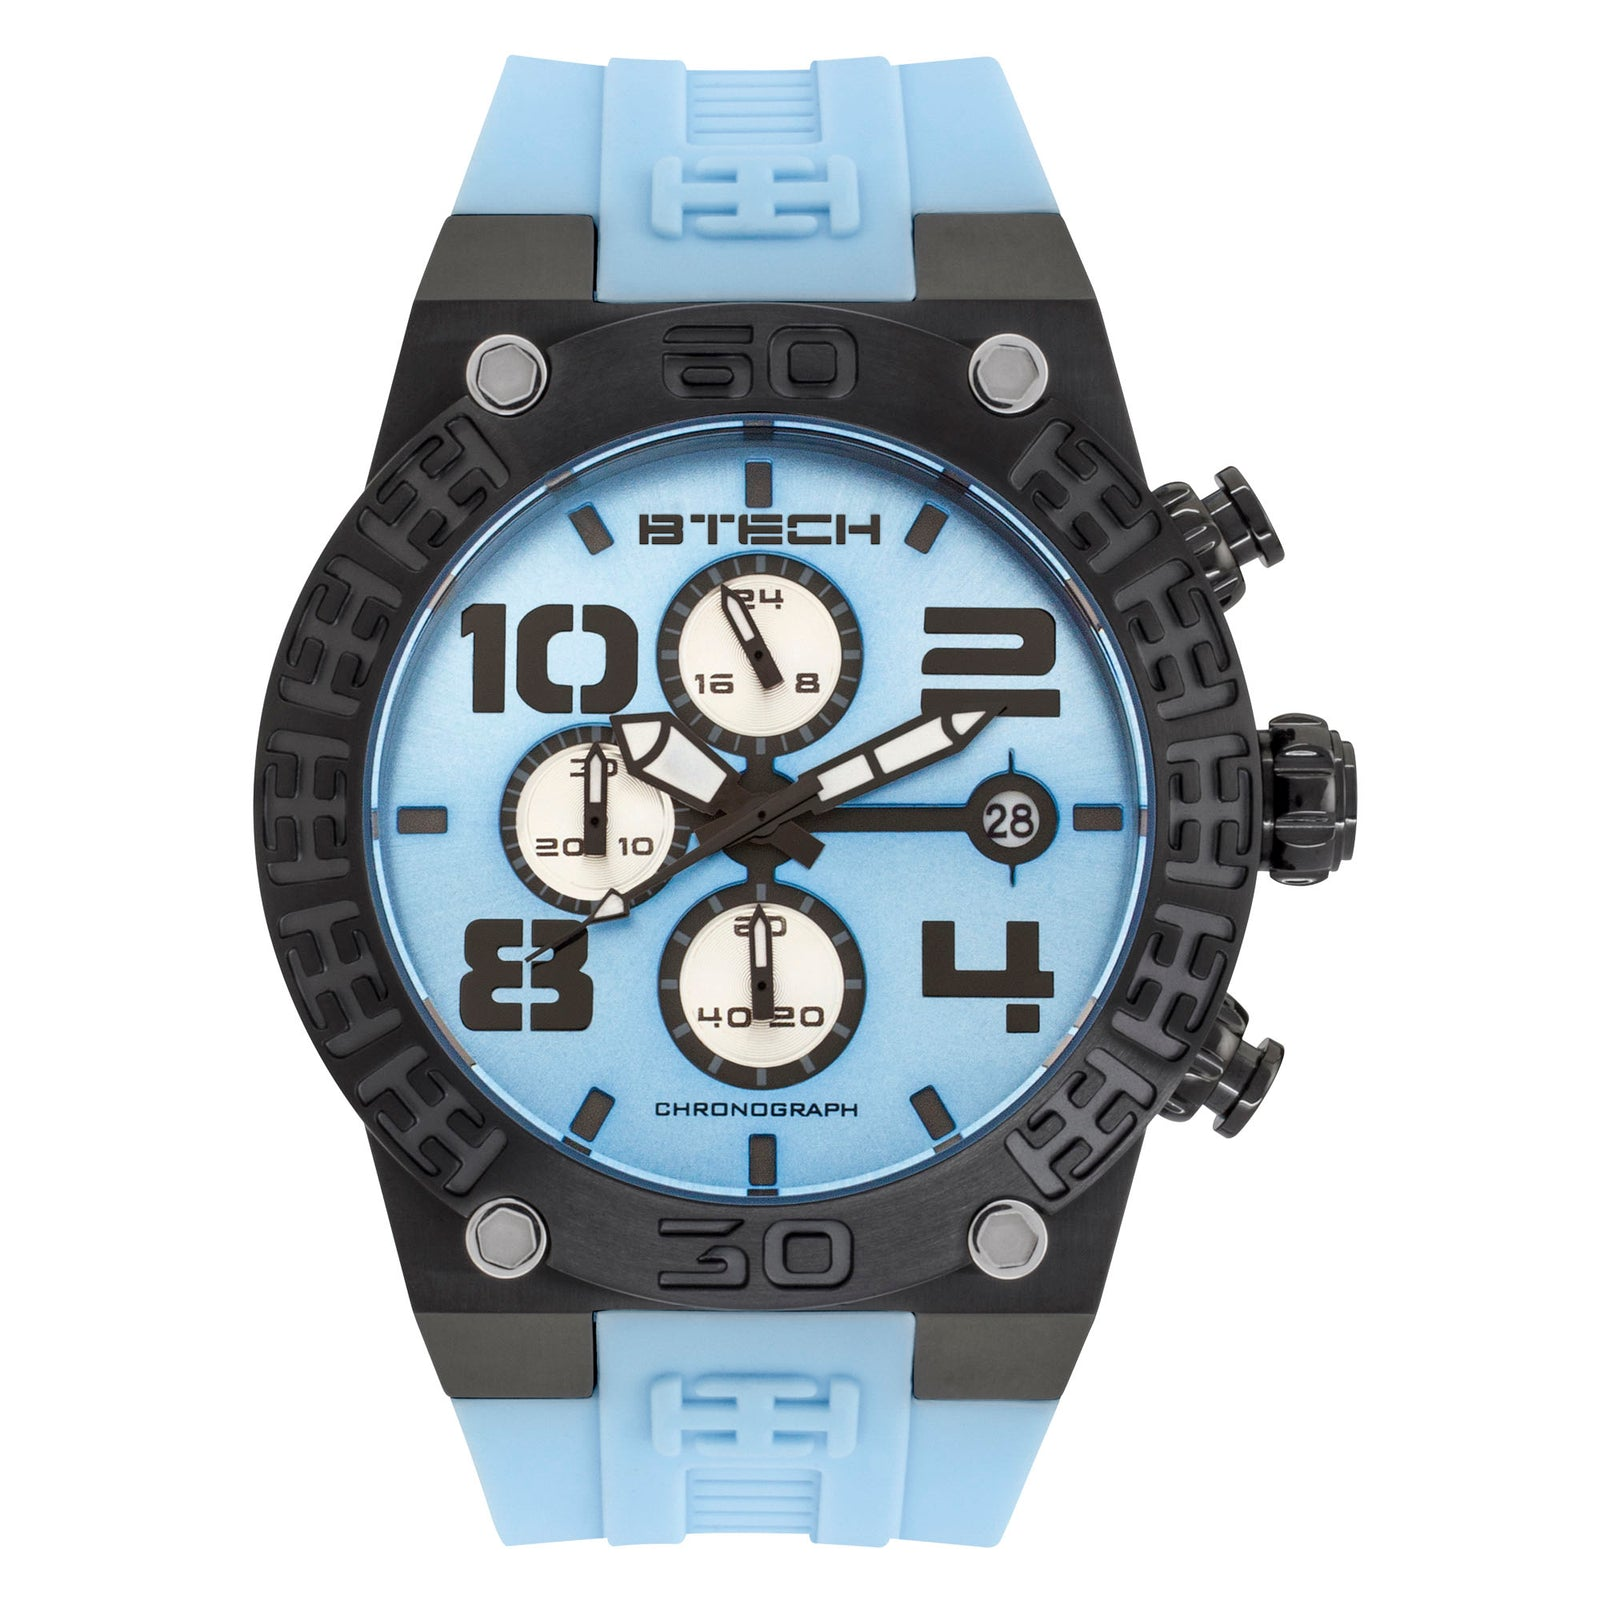 BTECH BT Chrono Light Blue Unisex Watch (BT-IB-322-11)